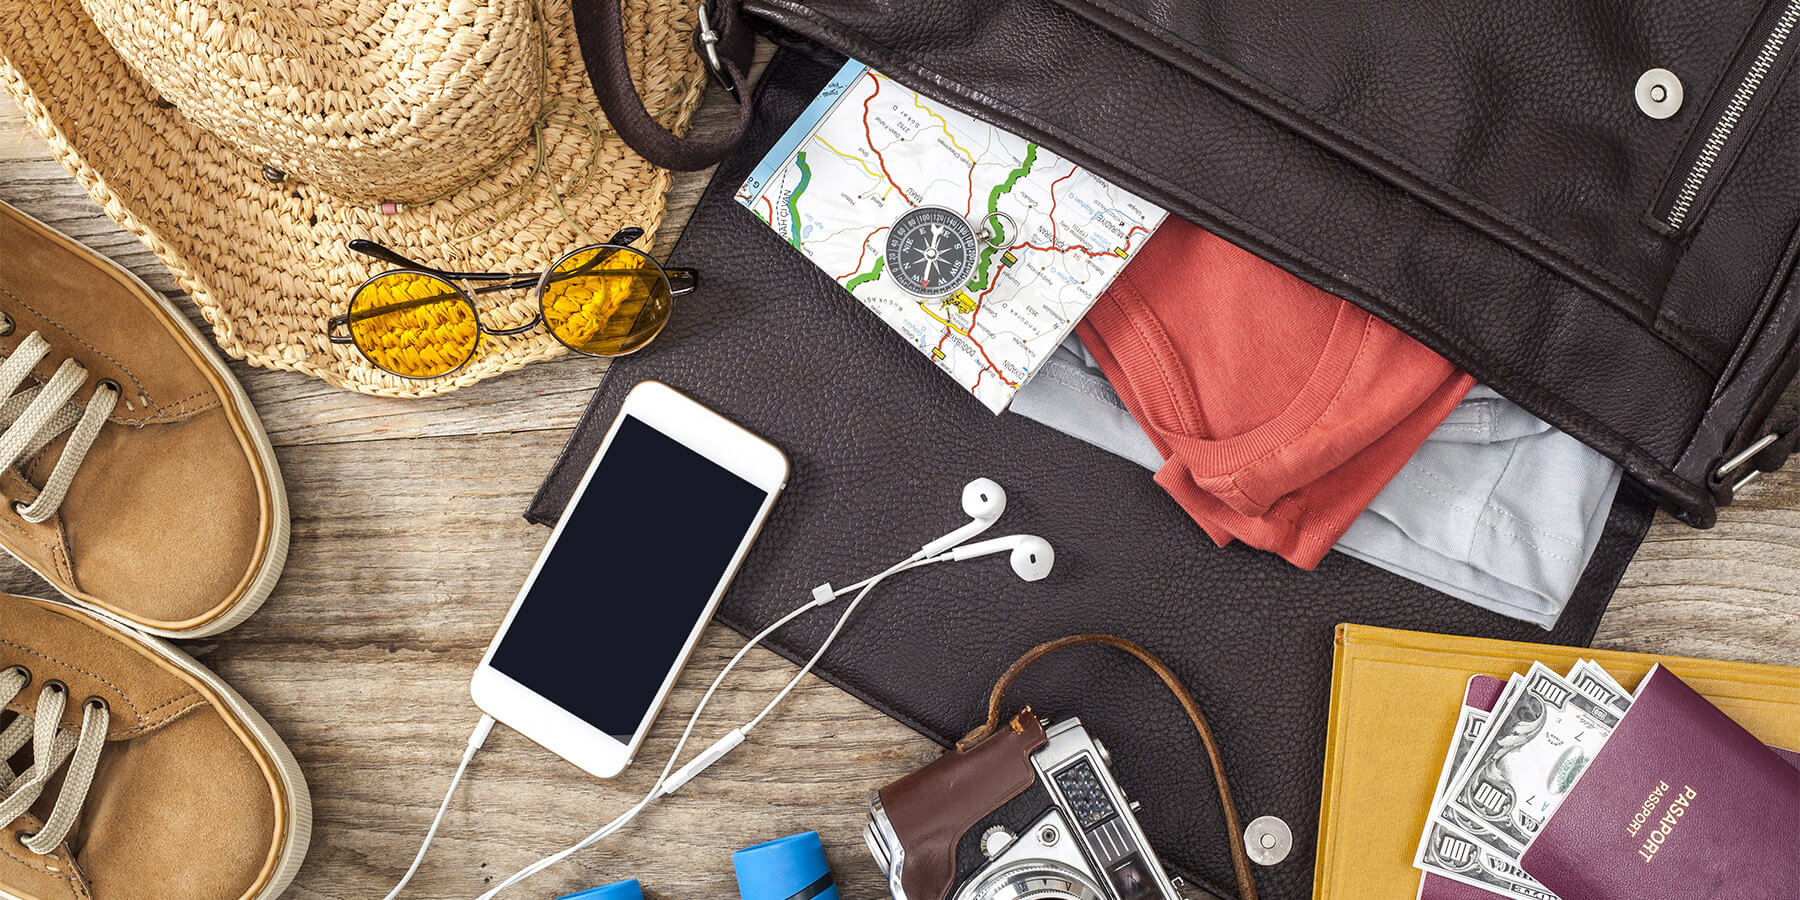 Travel Accessrories Laid out on Wooden Table